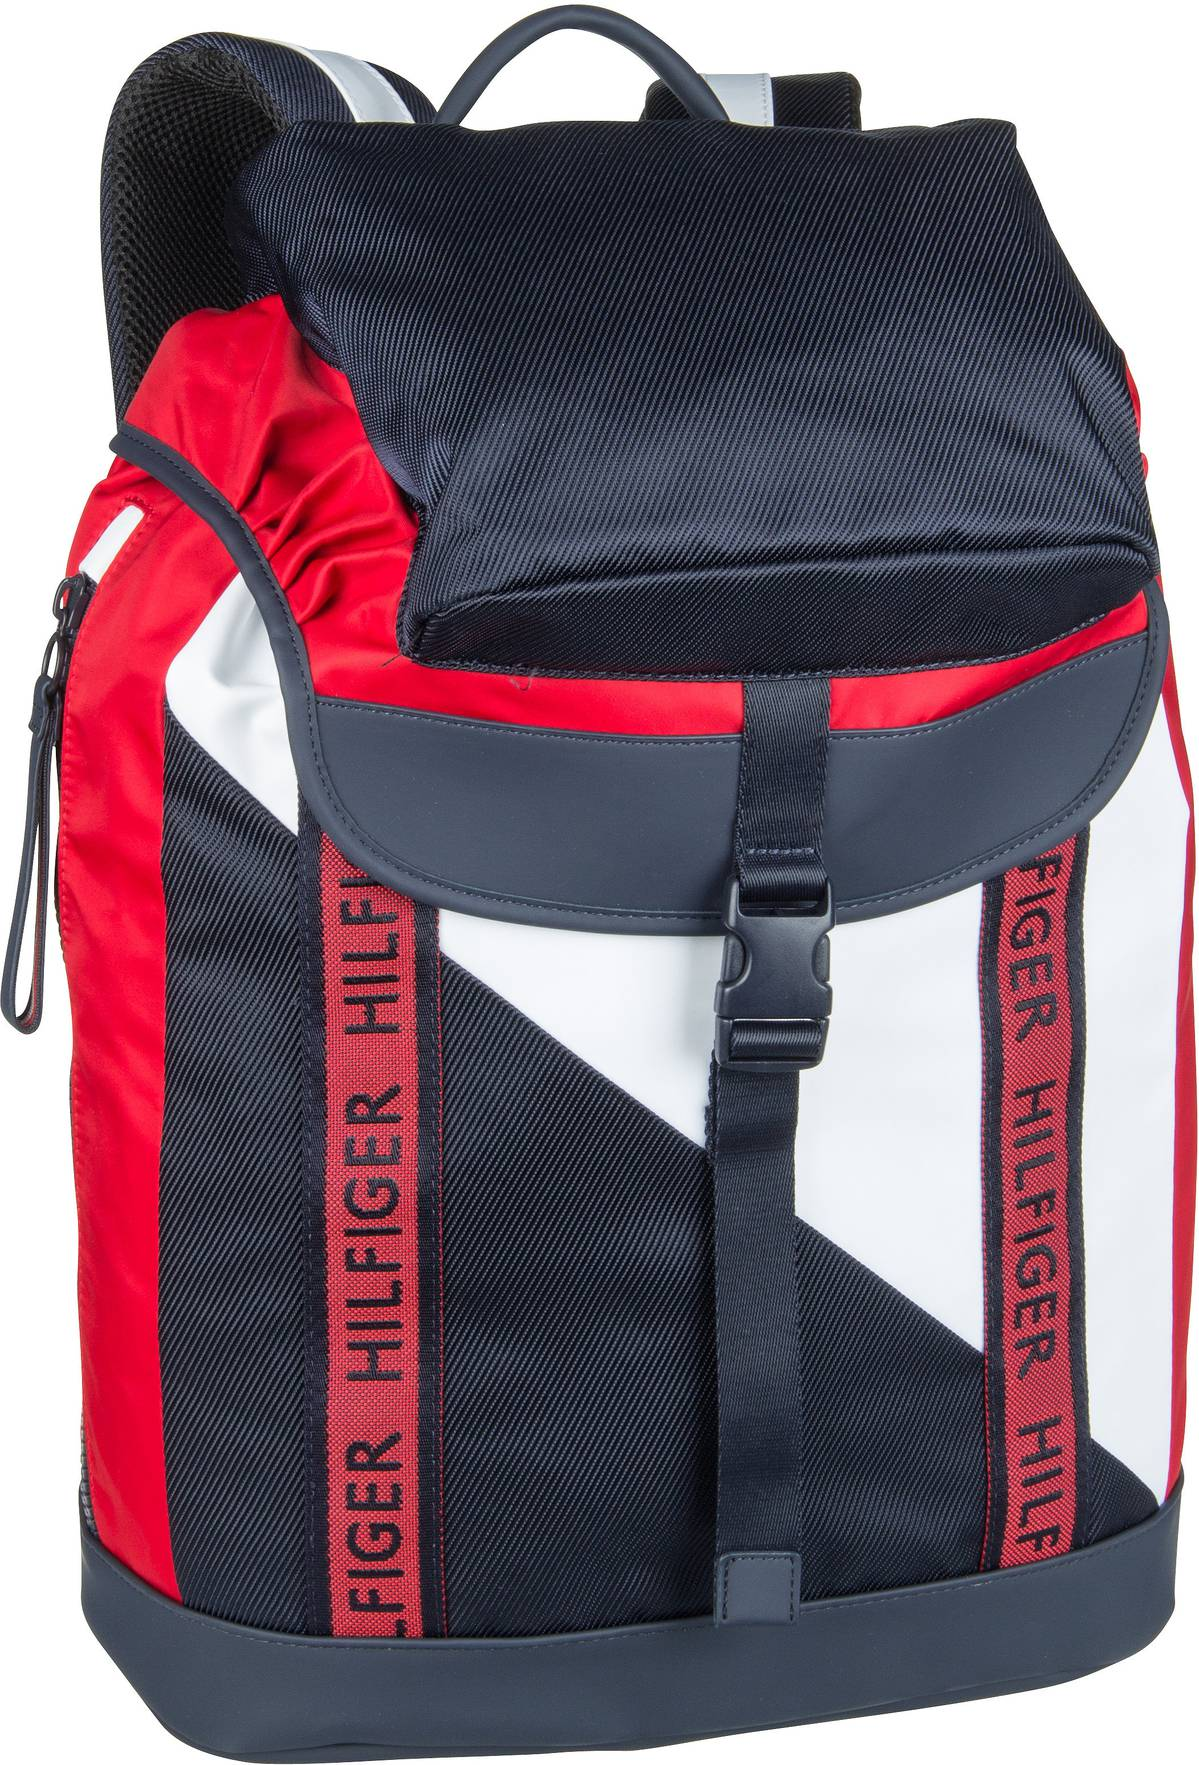 Rucksack / Daypack Color Mix Flap Backpack 4890 Corporate